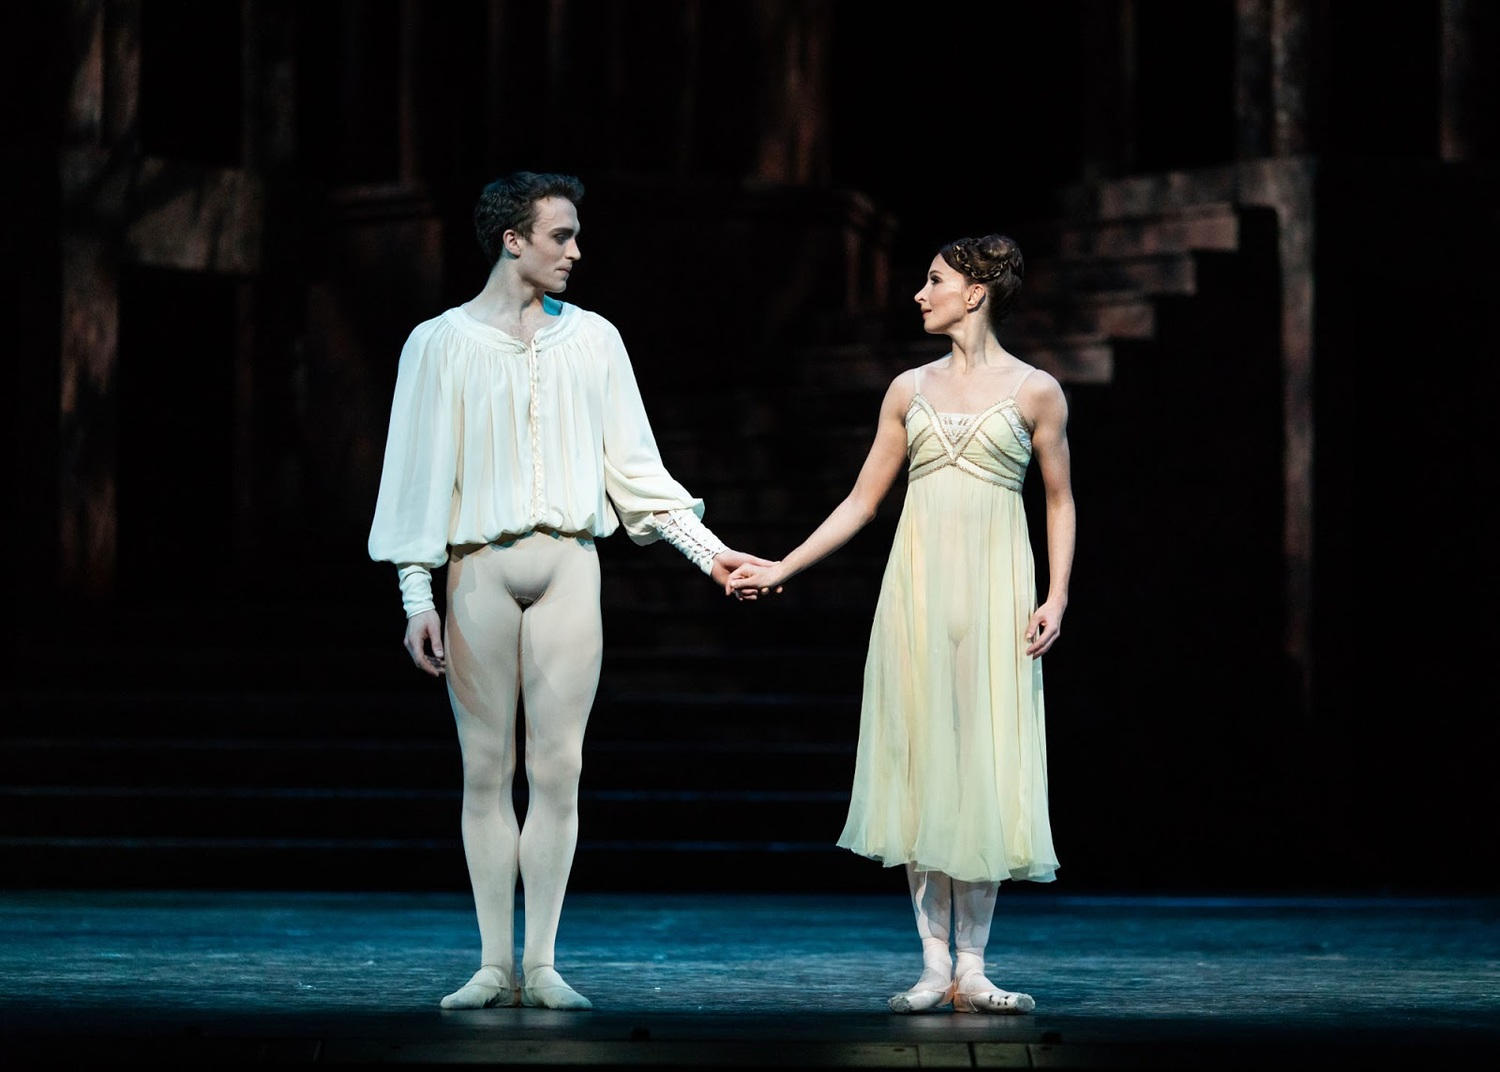 BWW Review: ROMEO AND JULIET, Royal Opera House